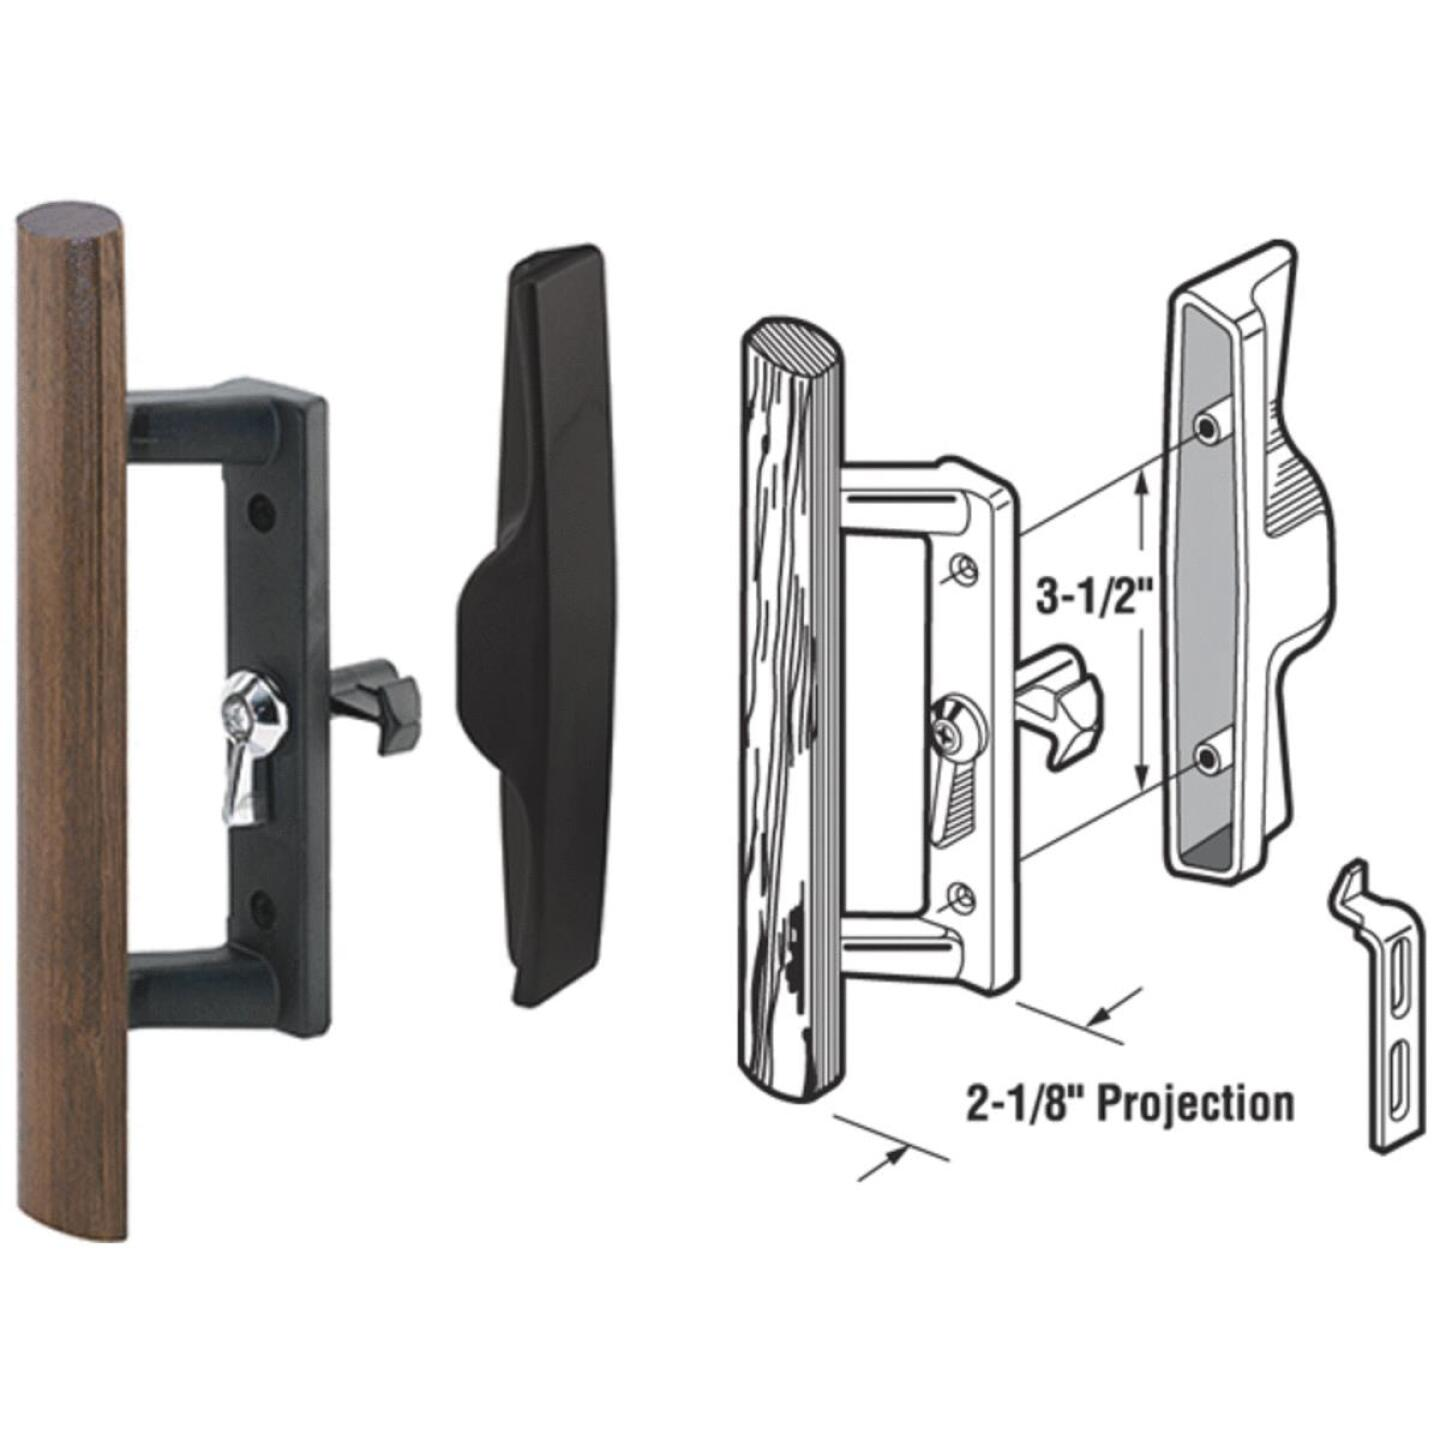 Prime-Line Internal Lock Sliding Patio Door Handle Set Image 1